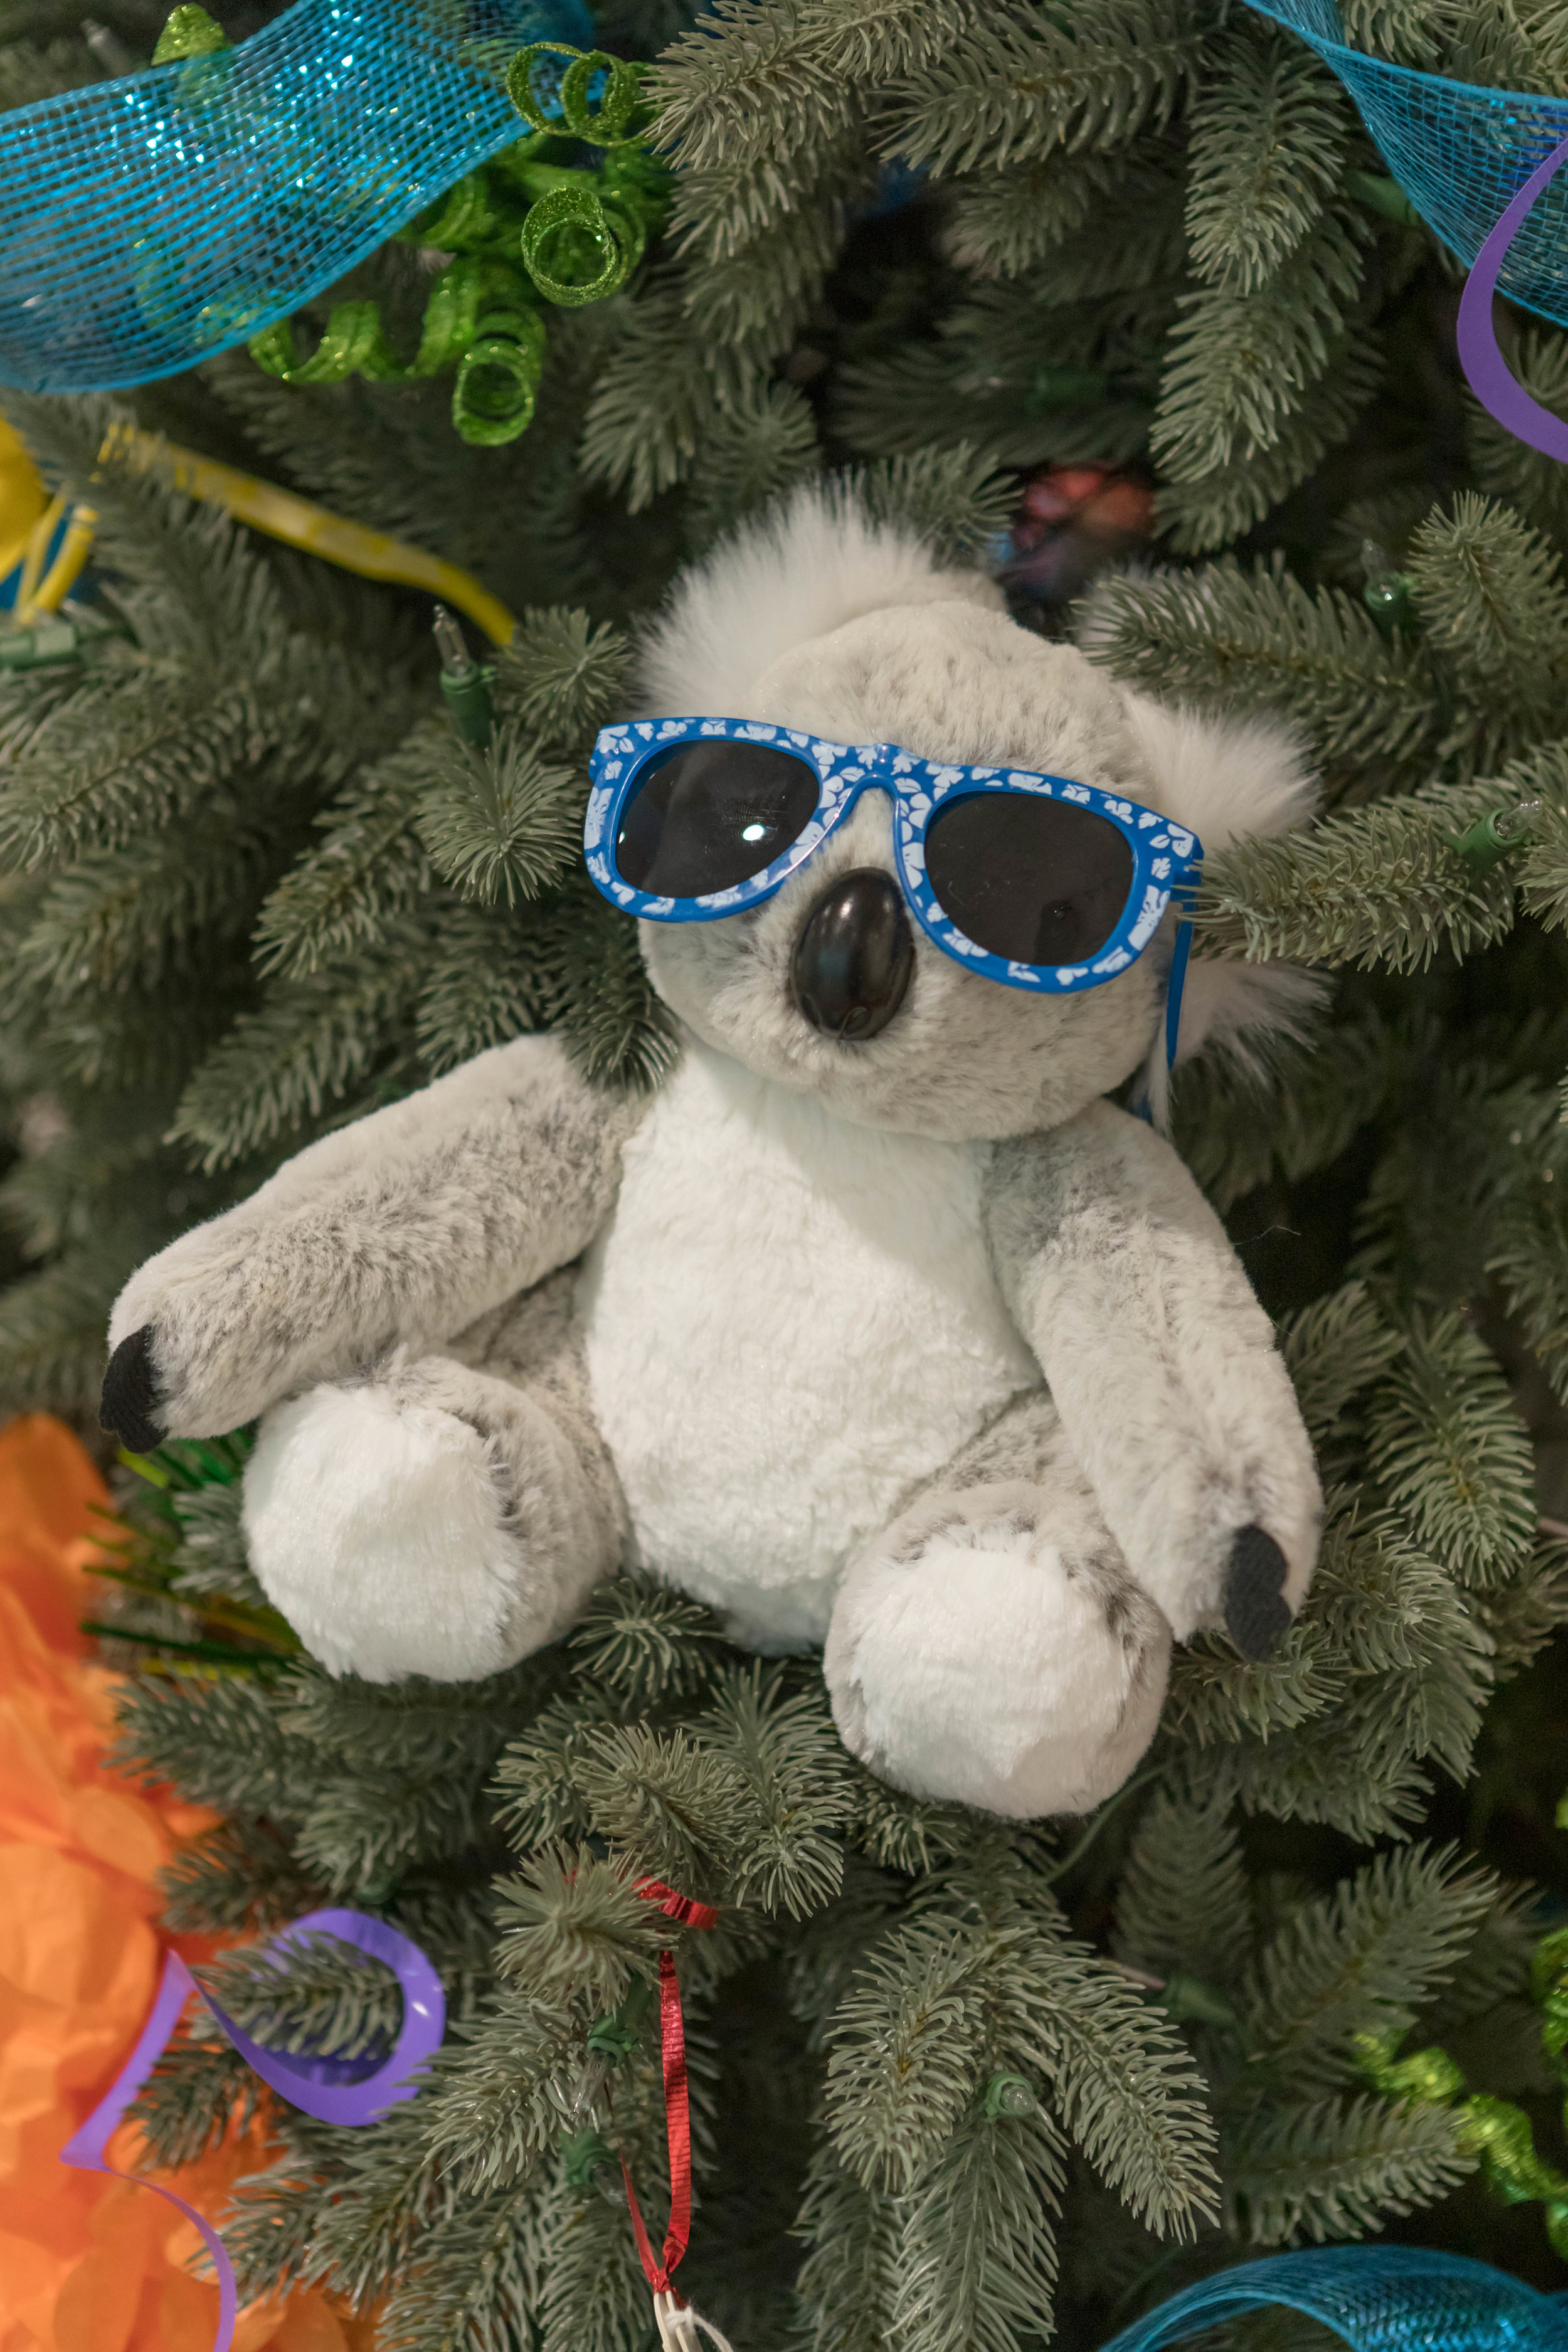 One Kool Koala Bear! The Koala bear is B Brave's symbol. His nickname was Joey Bear, and one significant way that Sam & Sara cared for Joey was by holding him as he lost all ability to support and hold himself up.